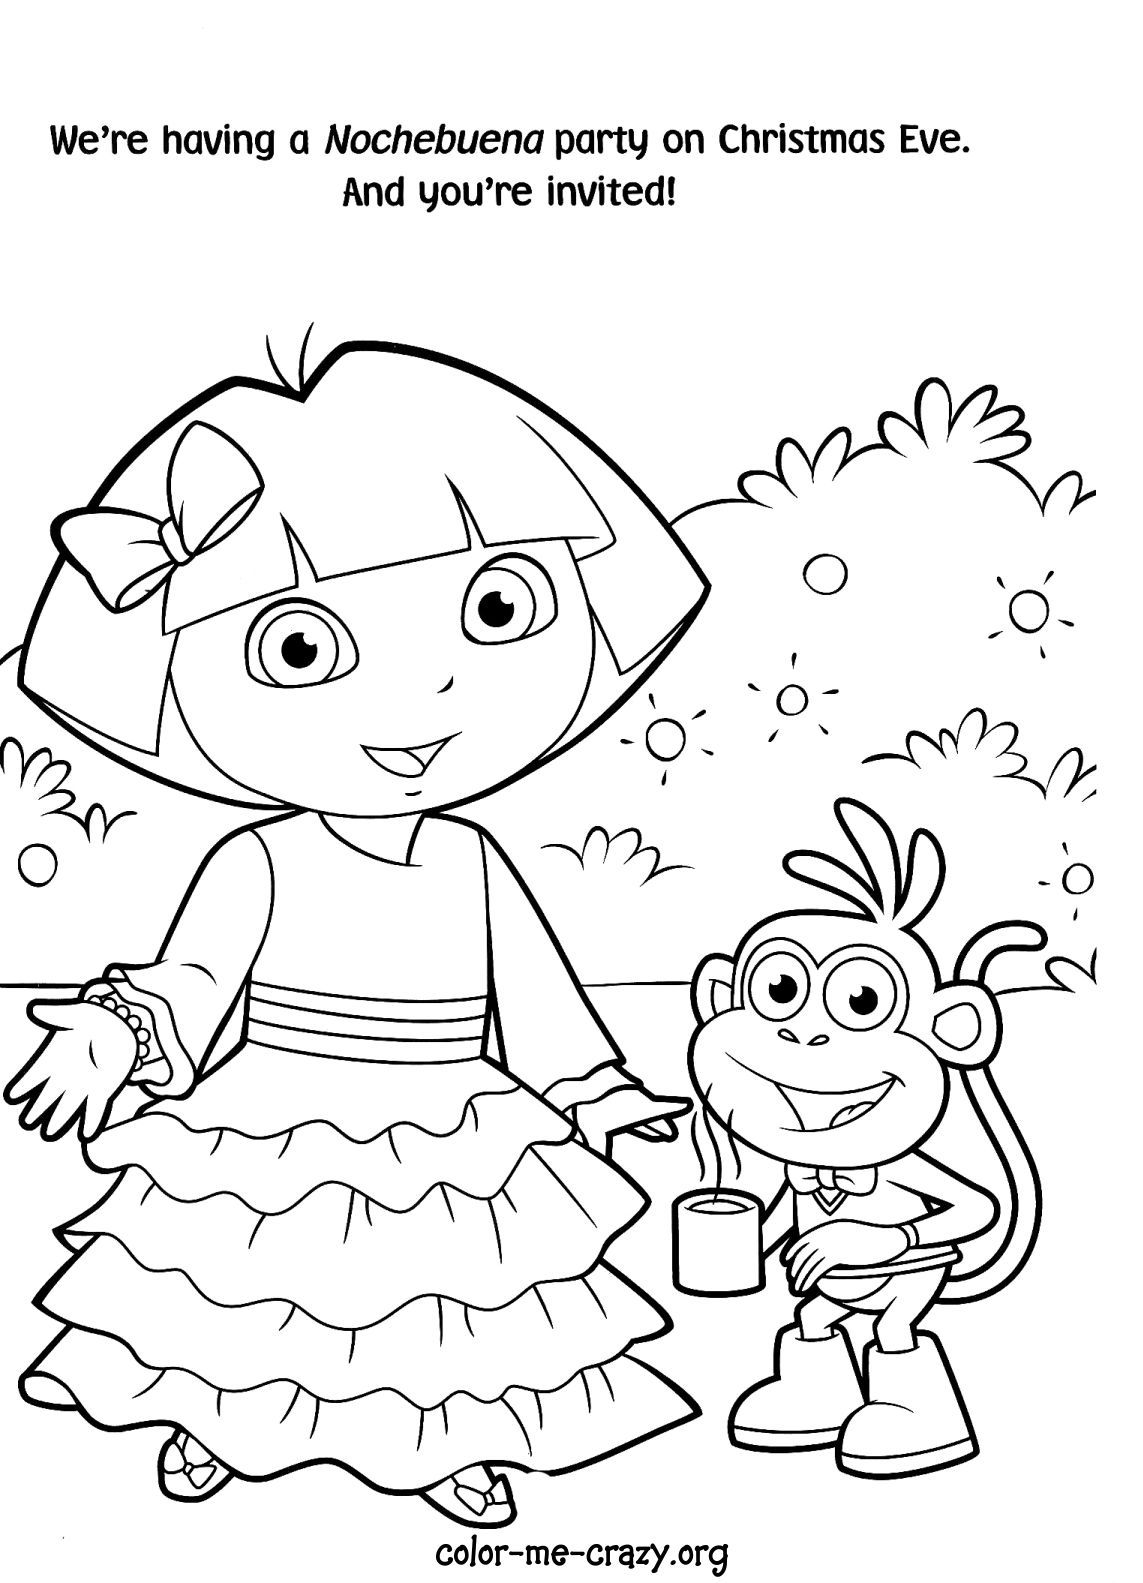 dora pictures to color and print print download dora coloring pages to learn new things and color pictures dora to print